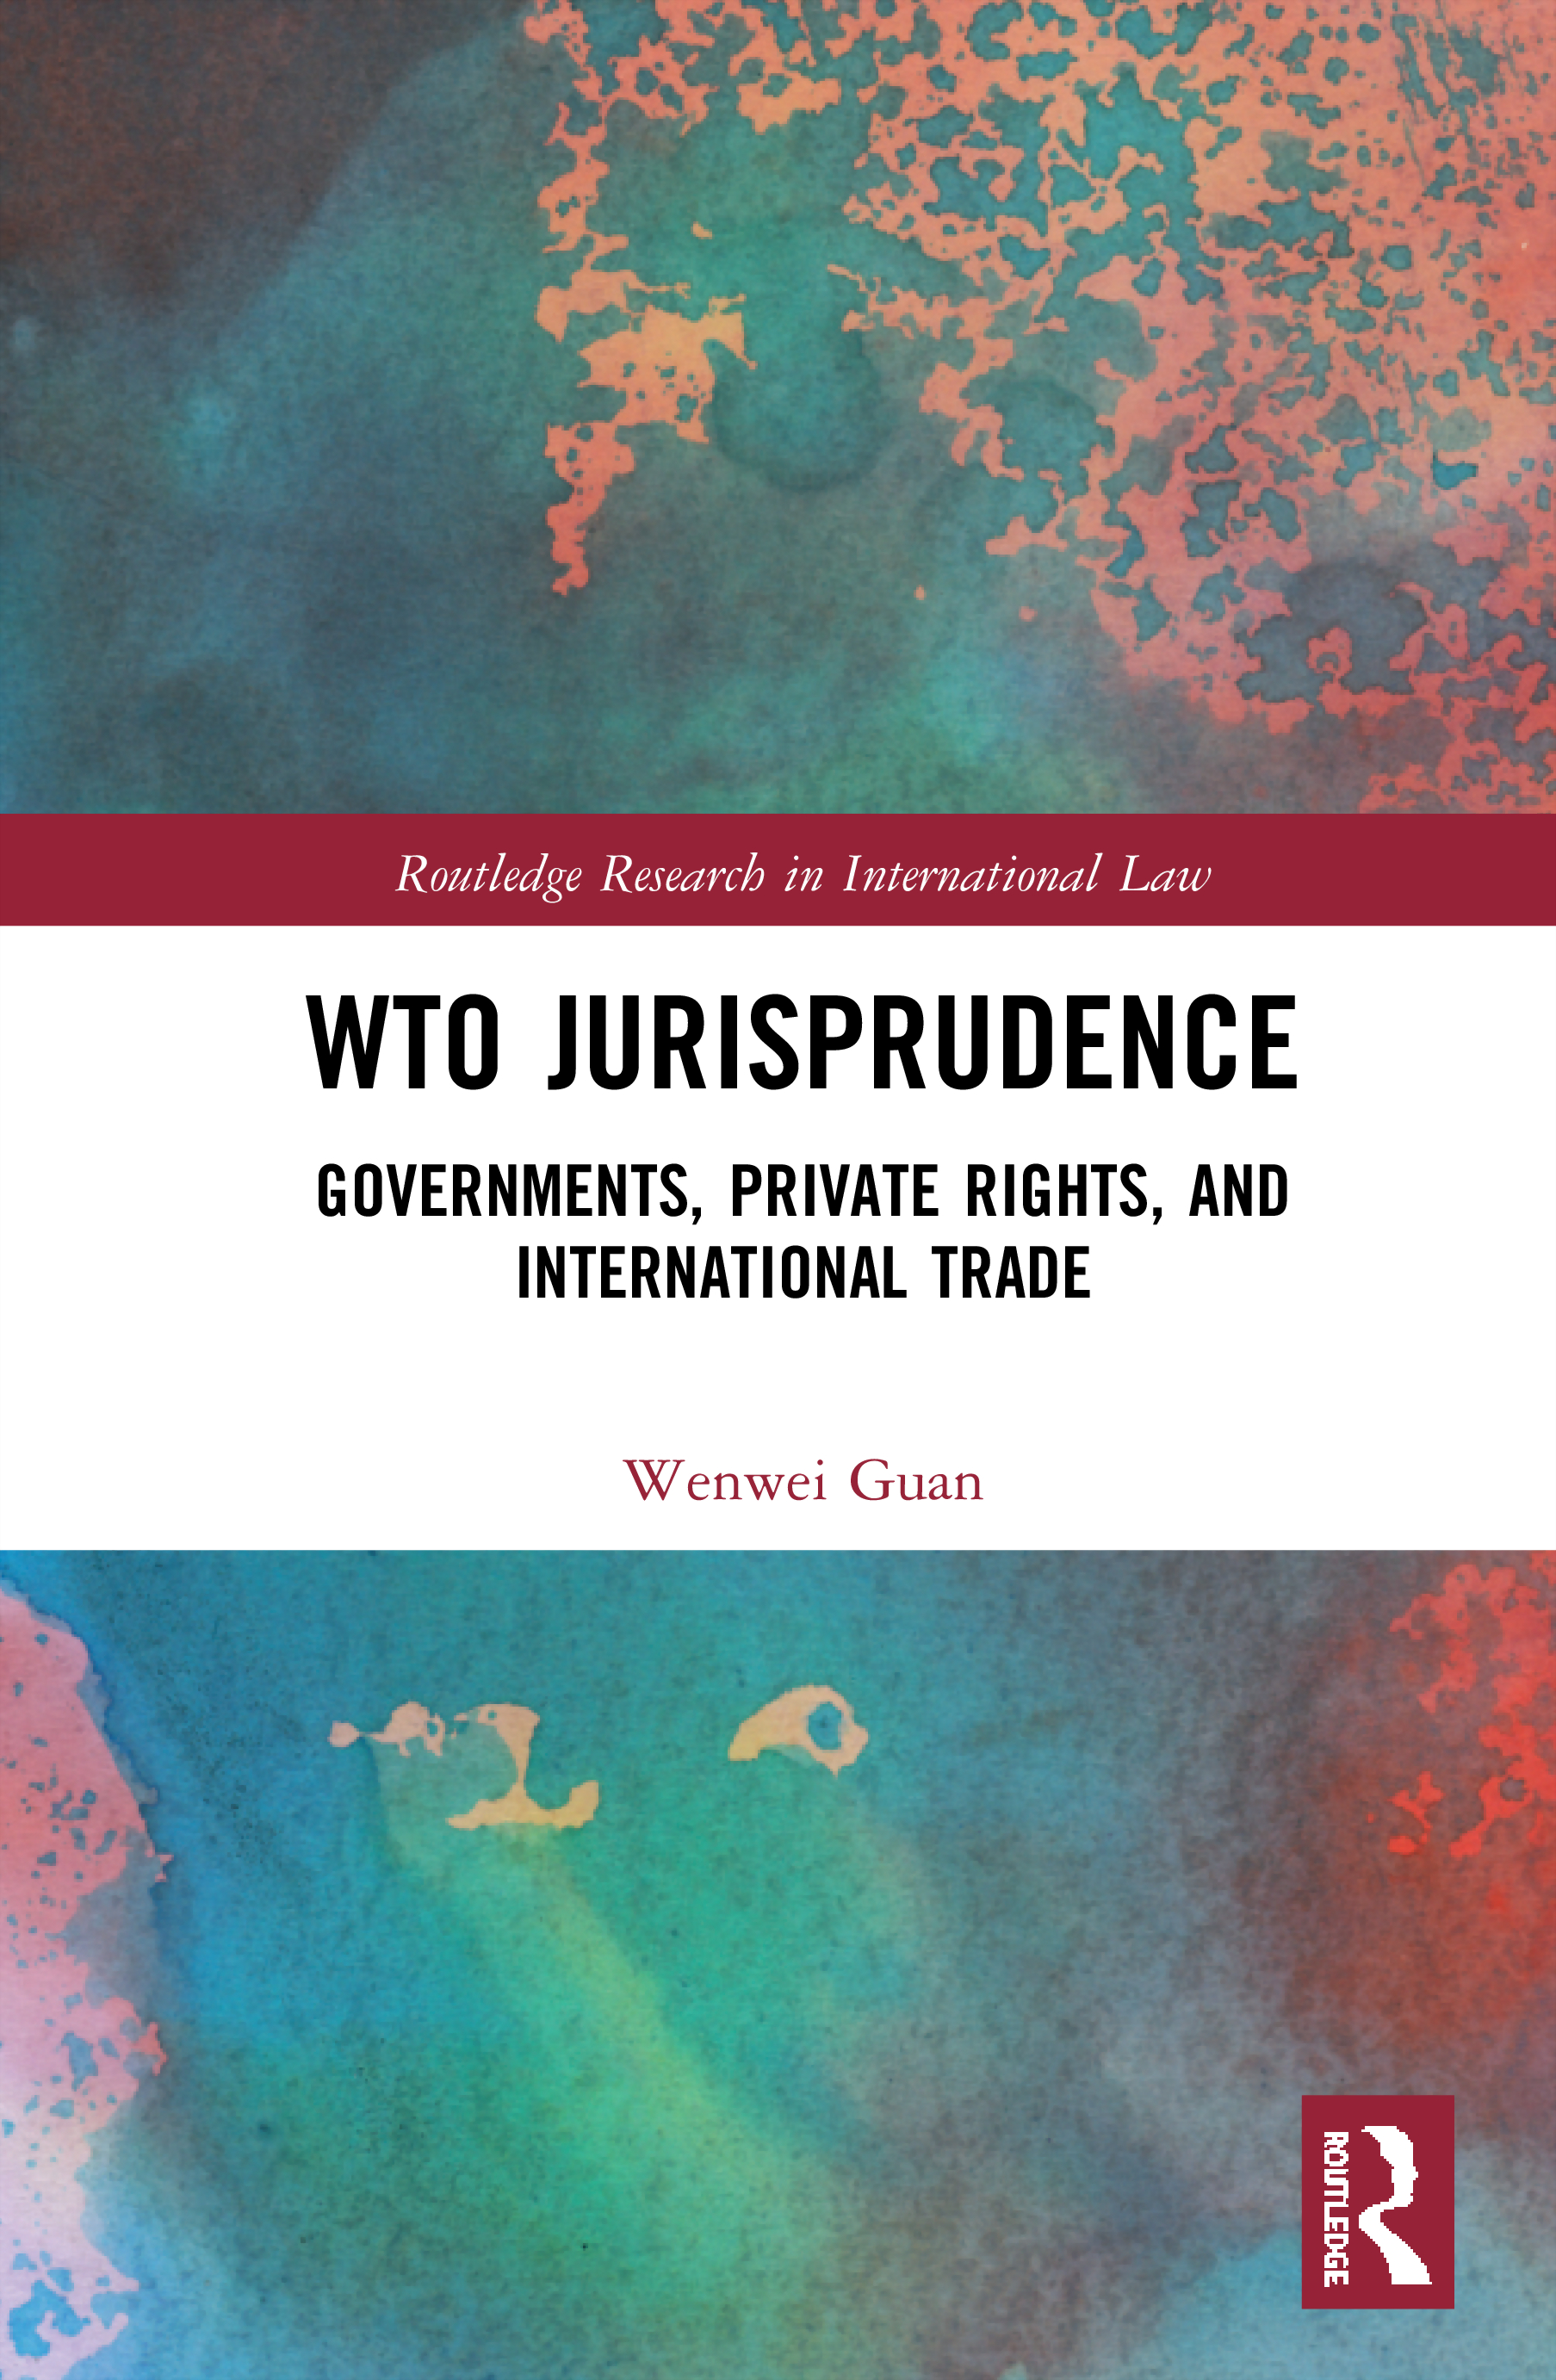 WTO Jurisprudence: Governments, Private Rights and International Trade, 1st Edition (Hardback) book cover